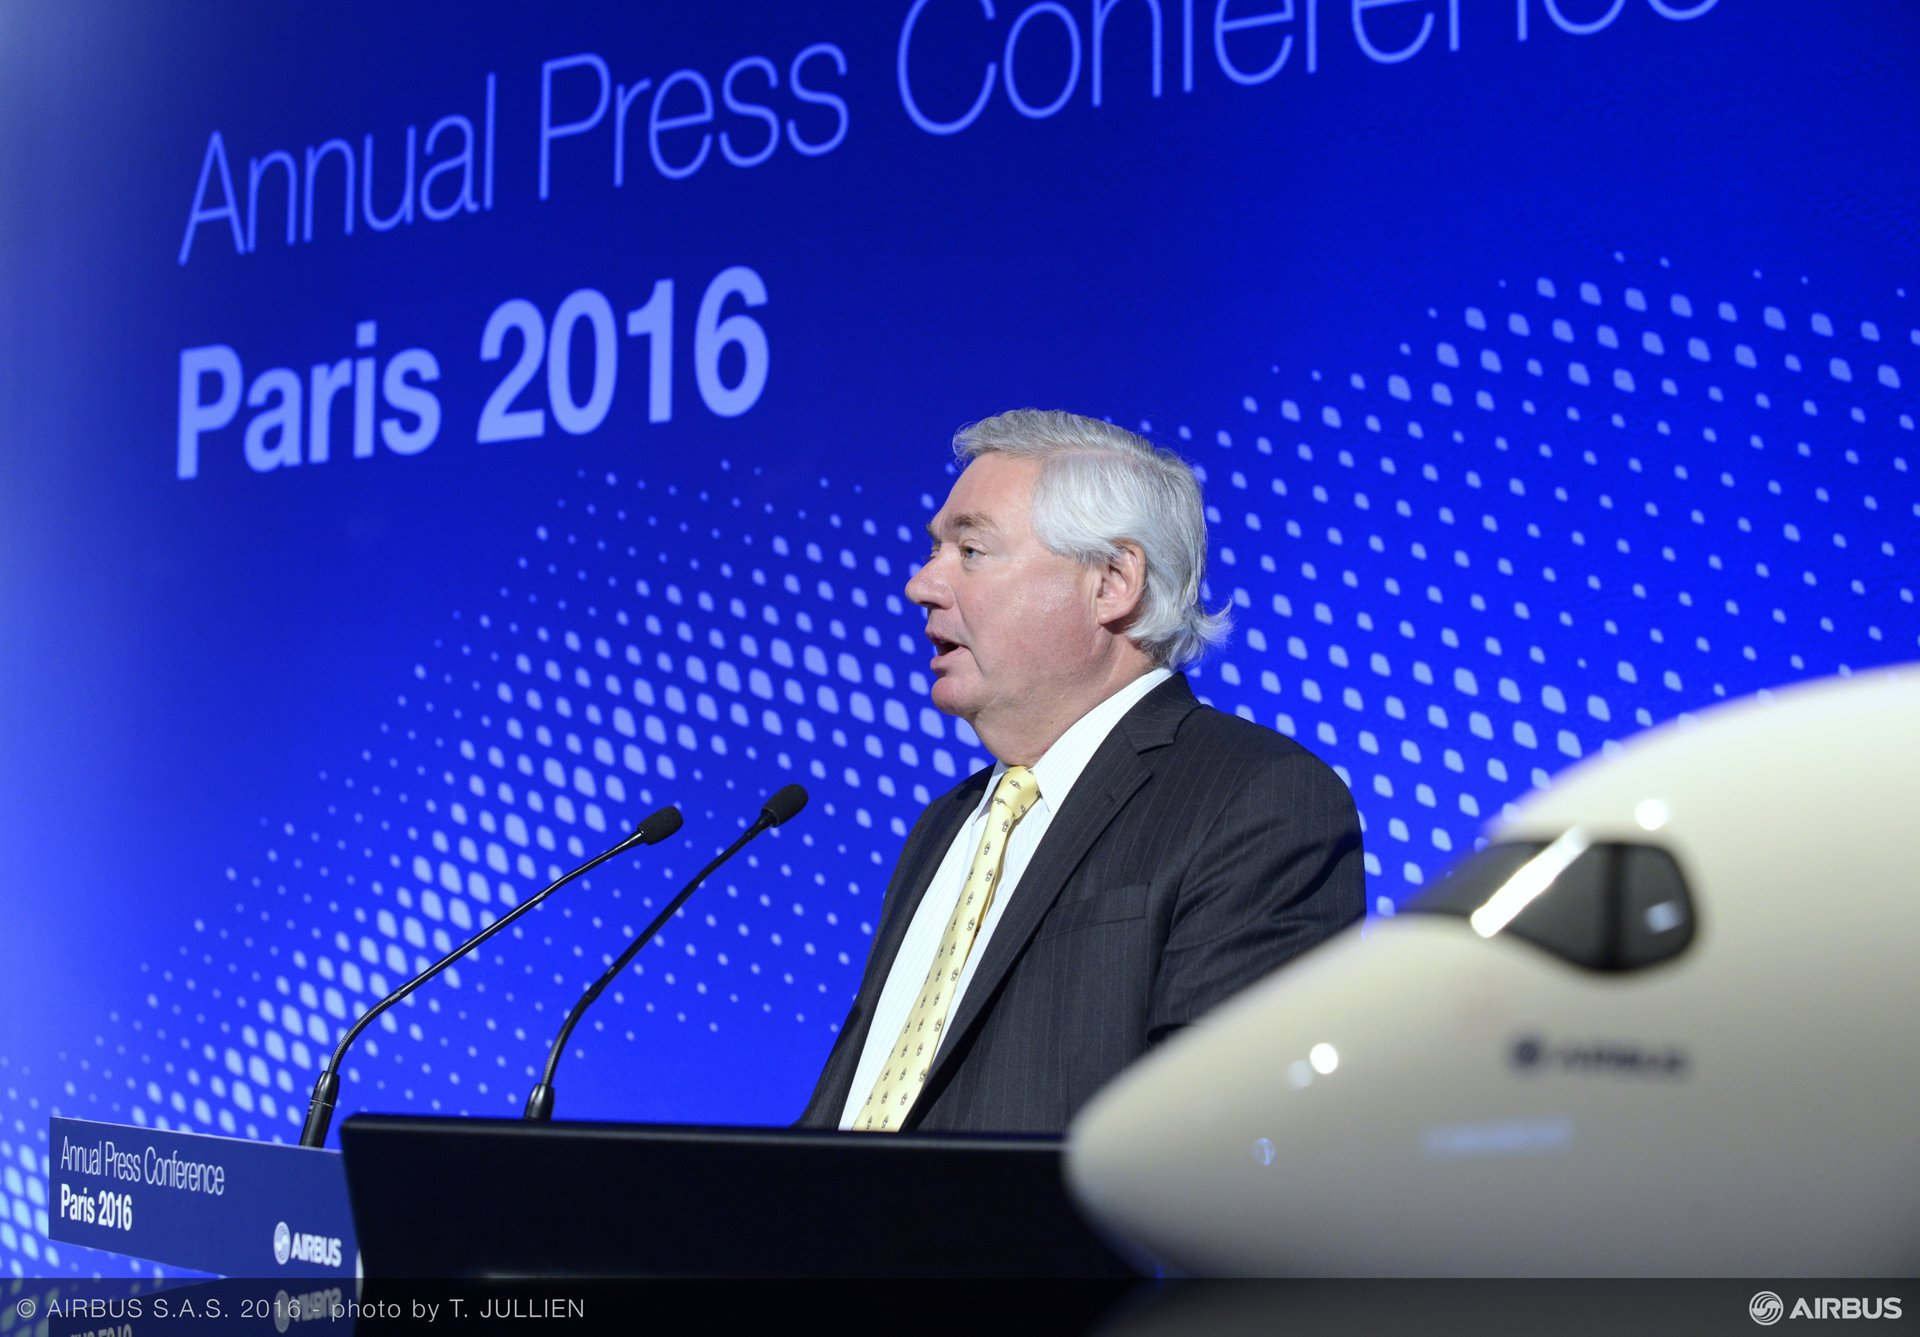 2016 Airbus annual press conference Leahy